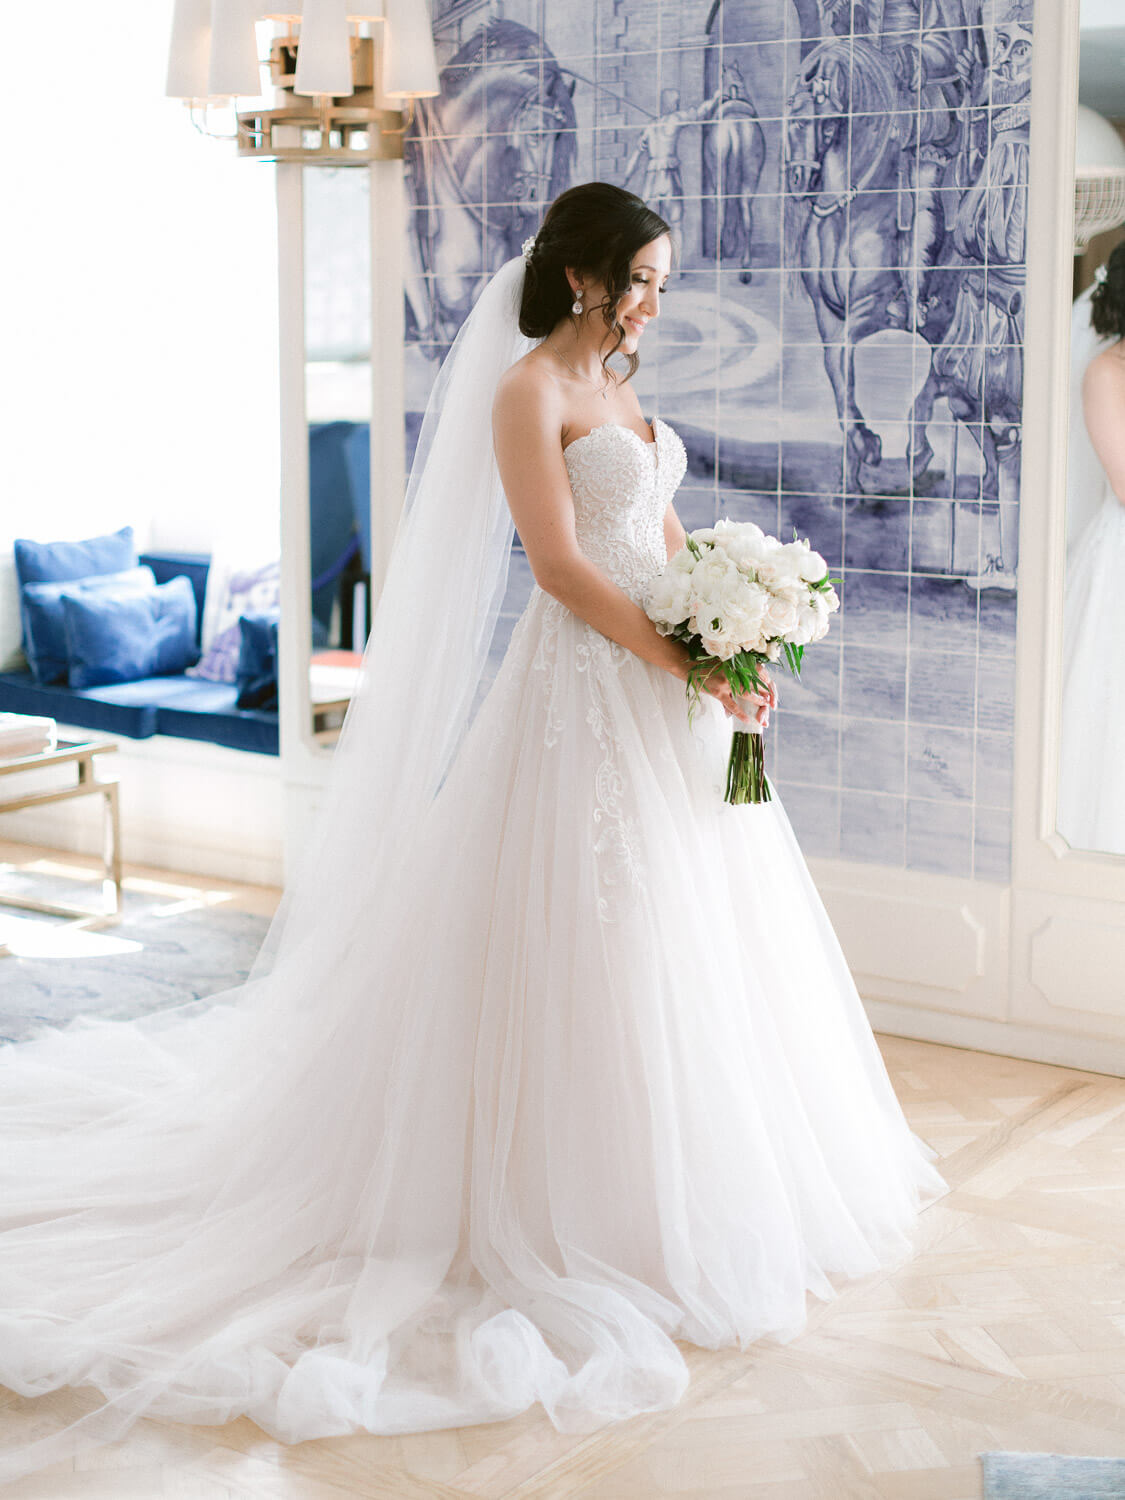 beautiful bride and bouquet portrait with Portuguese Azulejos wall backdrop by Portugal Wedding Photographer